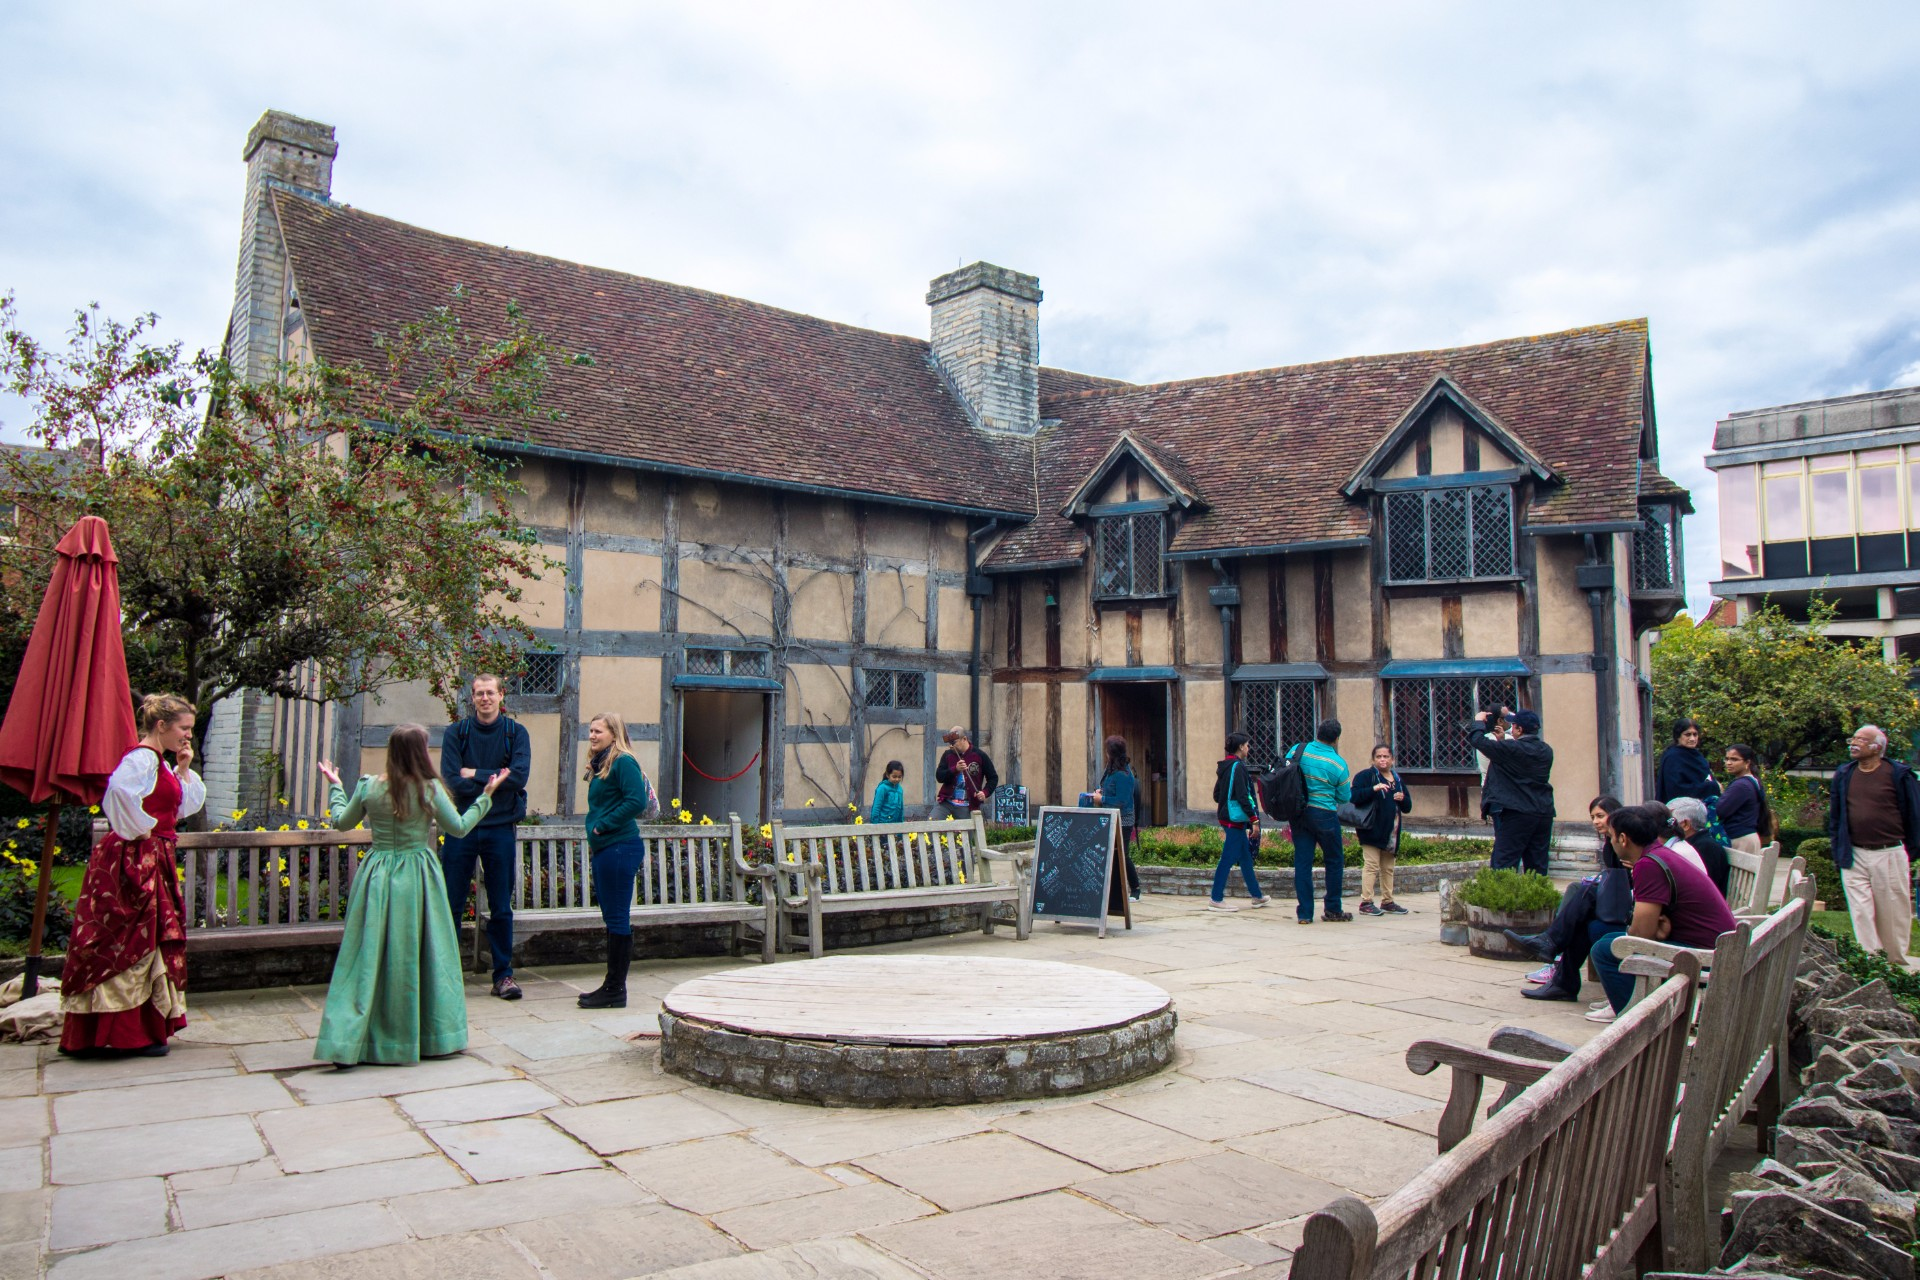 Shakespeare's Birthplace.  One Day in Shakespeare's Birthplace: Exploring Stratford-upon-Avon in the West Midlands of England. Here is the ultimate guide to visiting Stratford-upon-Avon in only one day - if you're short on time and want to tick off all the Shakespearean hotspots and most picturesque areas, you've come to the right place! These include Shakespeare's Birthplace, Shakespeare's New Place, Hall's Croft, Anne Hathaway's Cottage, Old Town, the Royal Shakespeare Company (RSC) and the River Avon. Click through to read more...